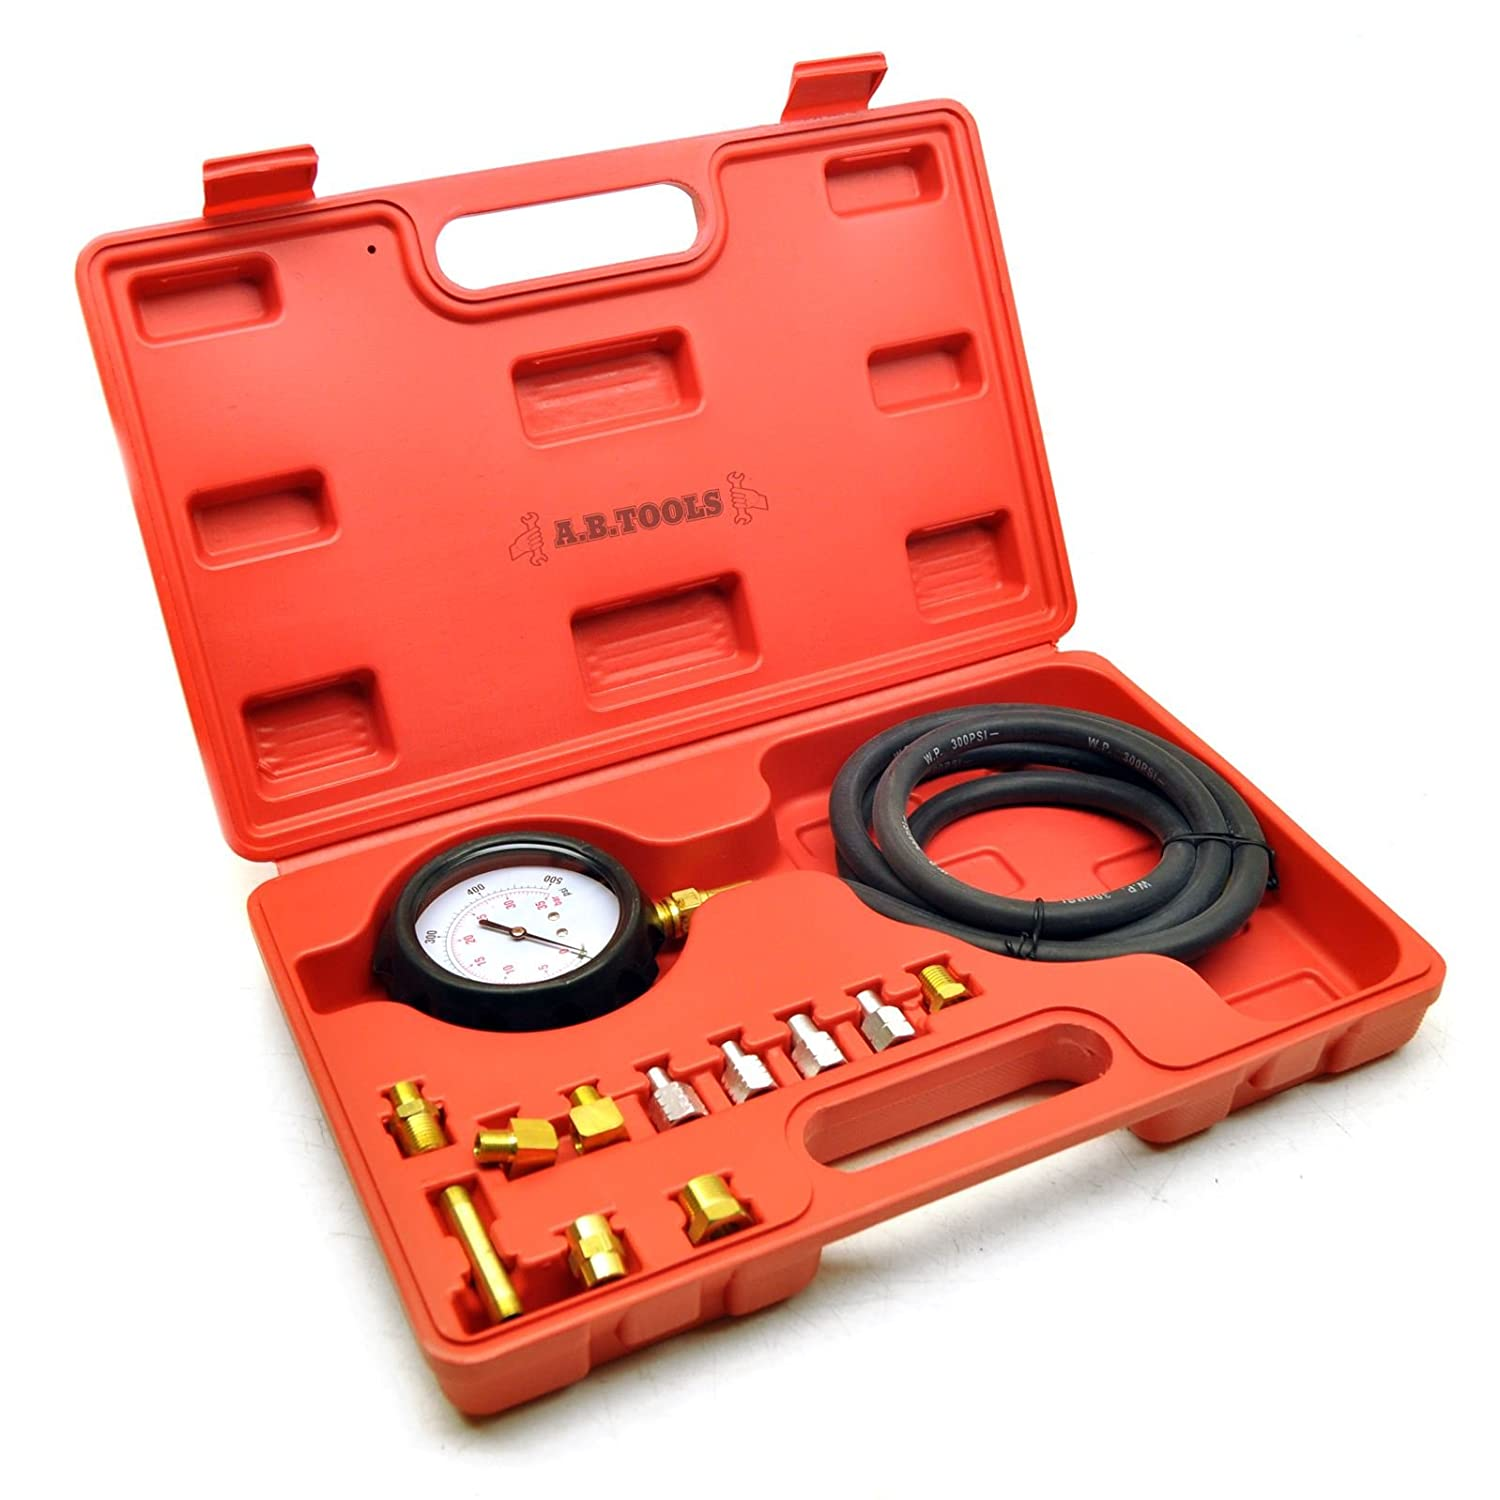 Oil pressure tester / wave box pressure meter AT692 AB Tools